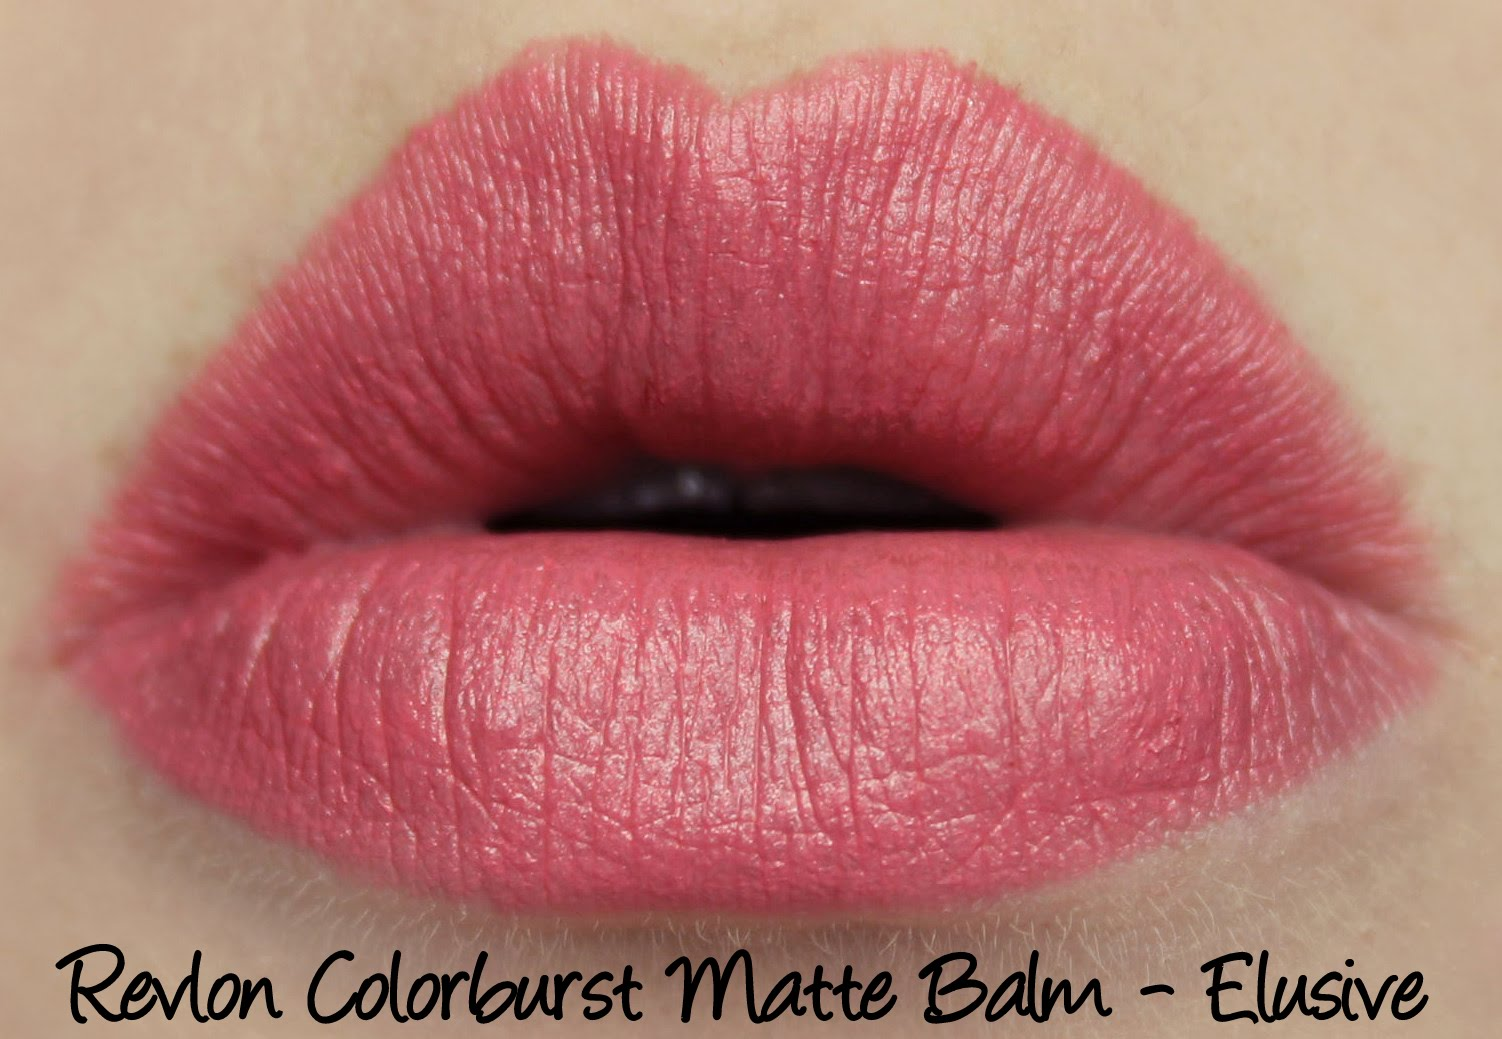 Revlon Colorburst Matte Balm - Elusive Swatches & Review